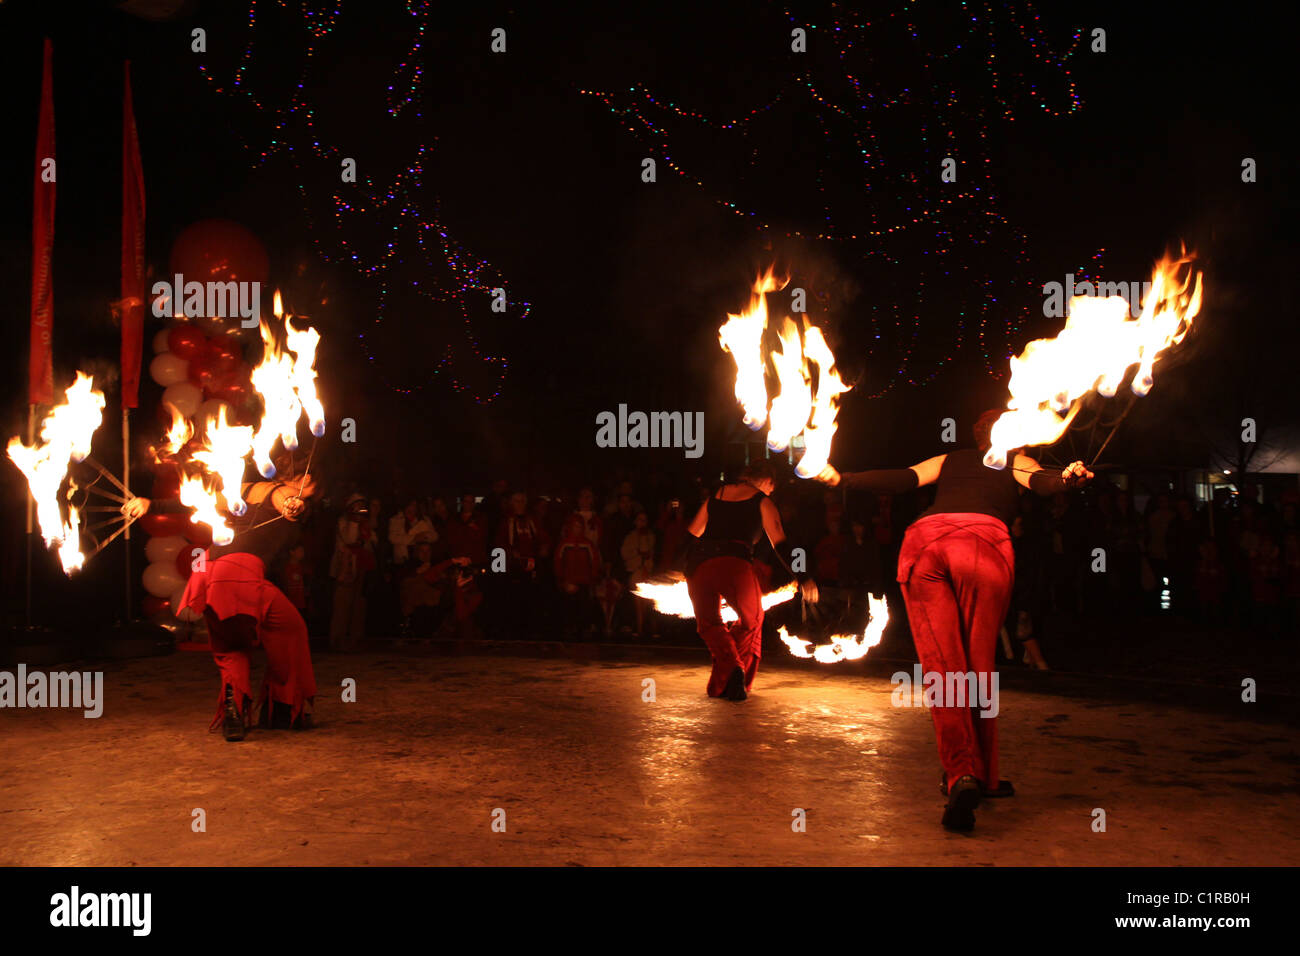 Female firedancing troupe perform at an outdoor night time celebration - Stock Image